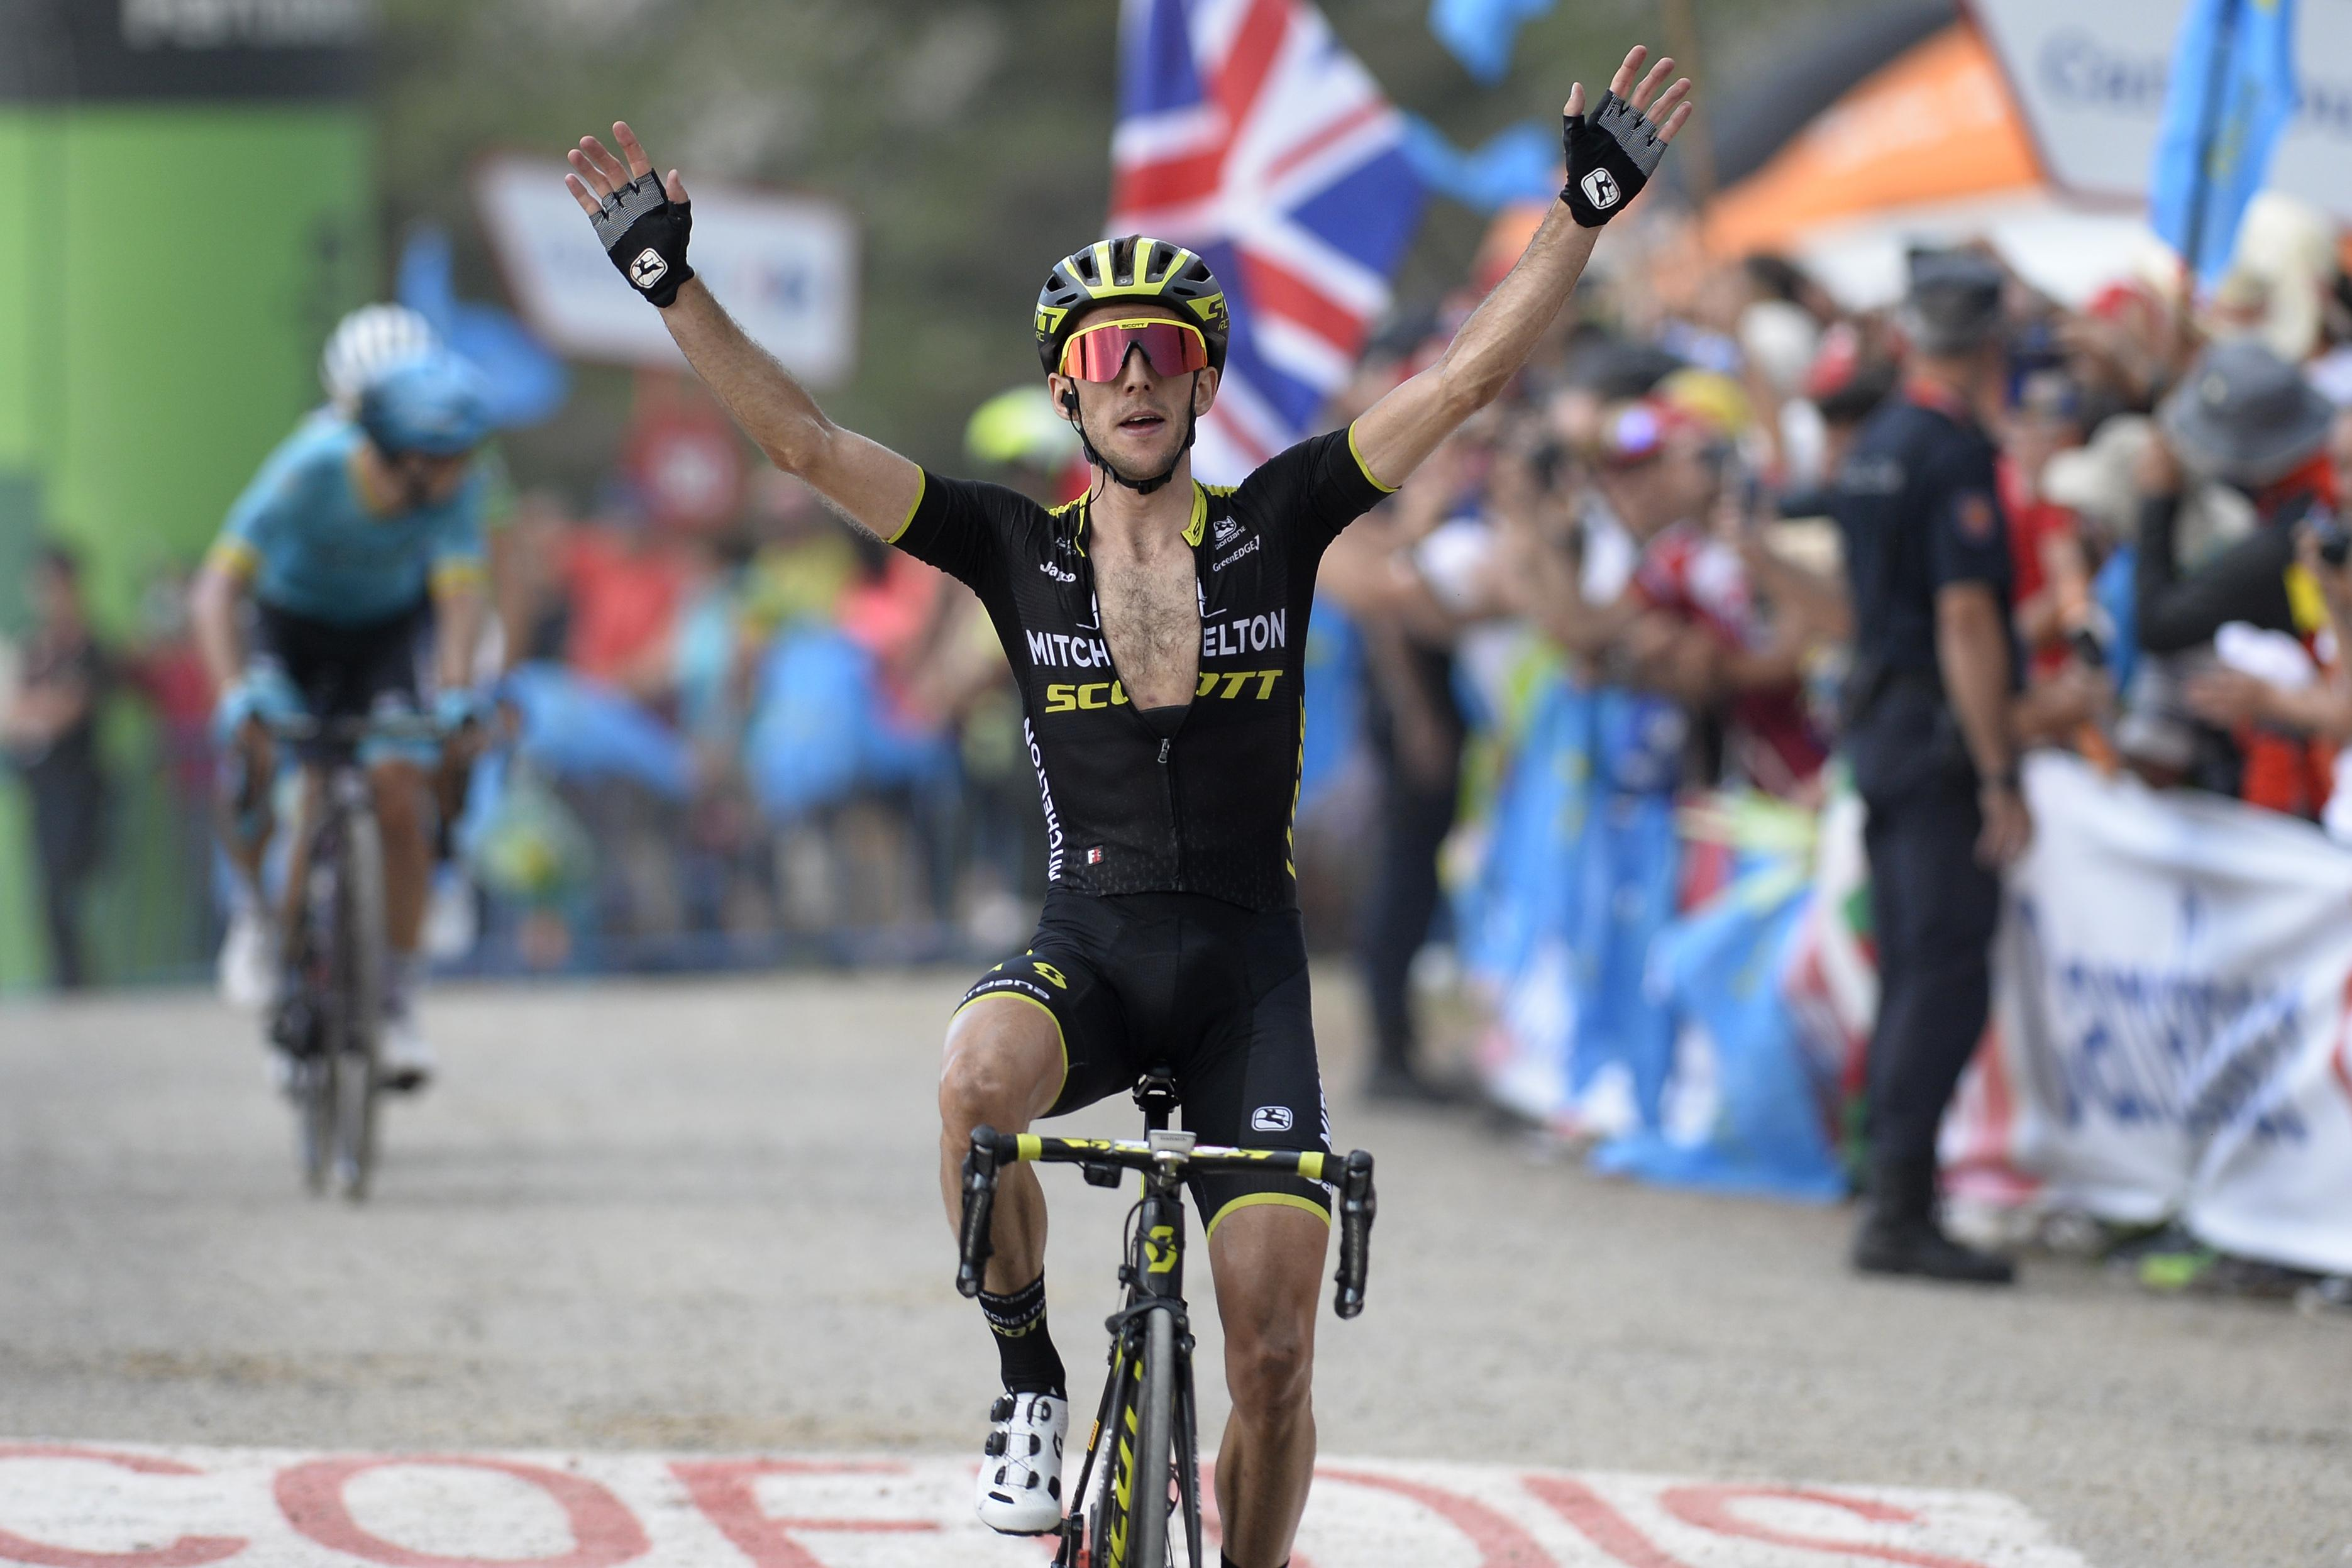 Simon Yates holds his arms aloft after winning stage 14 of the Vuelta a Espana